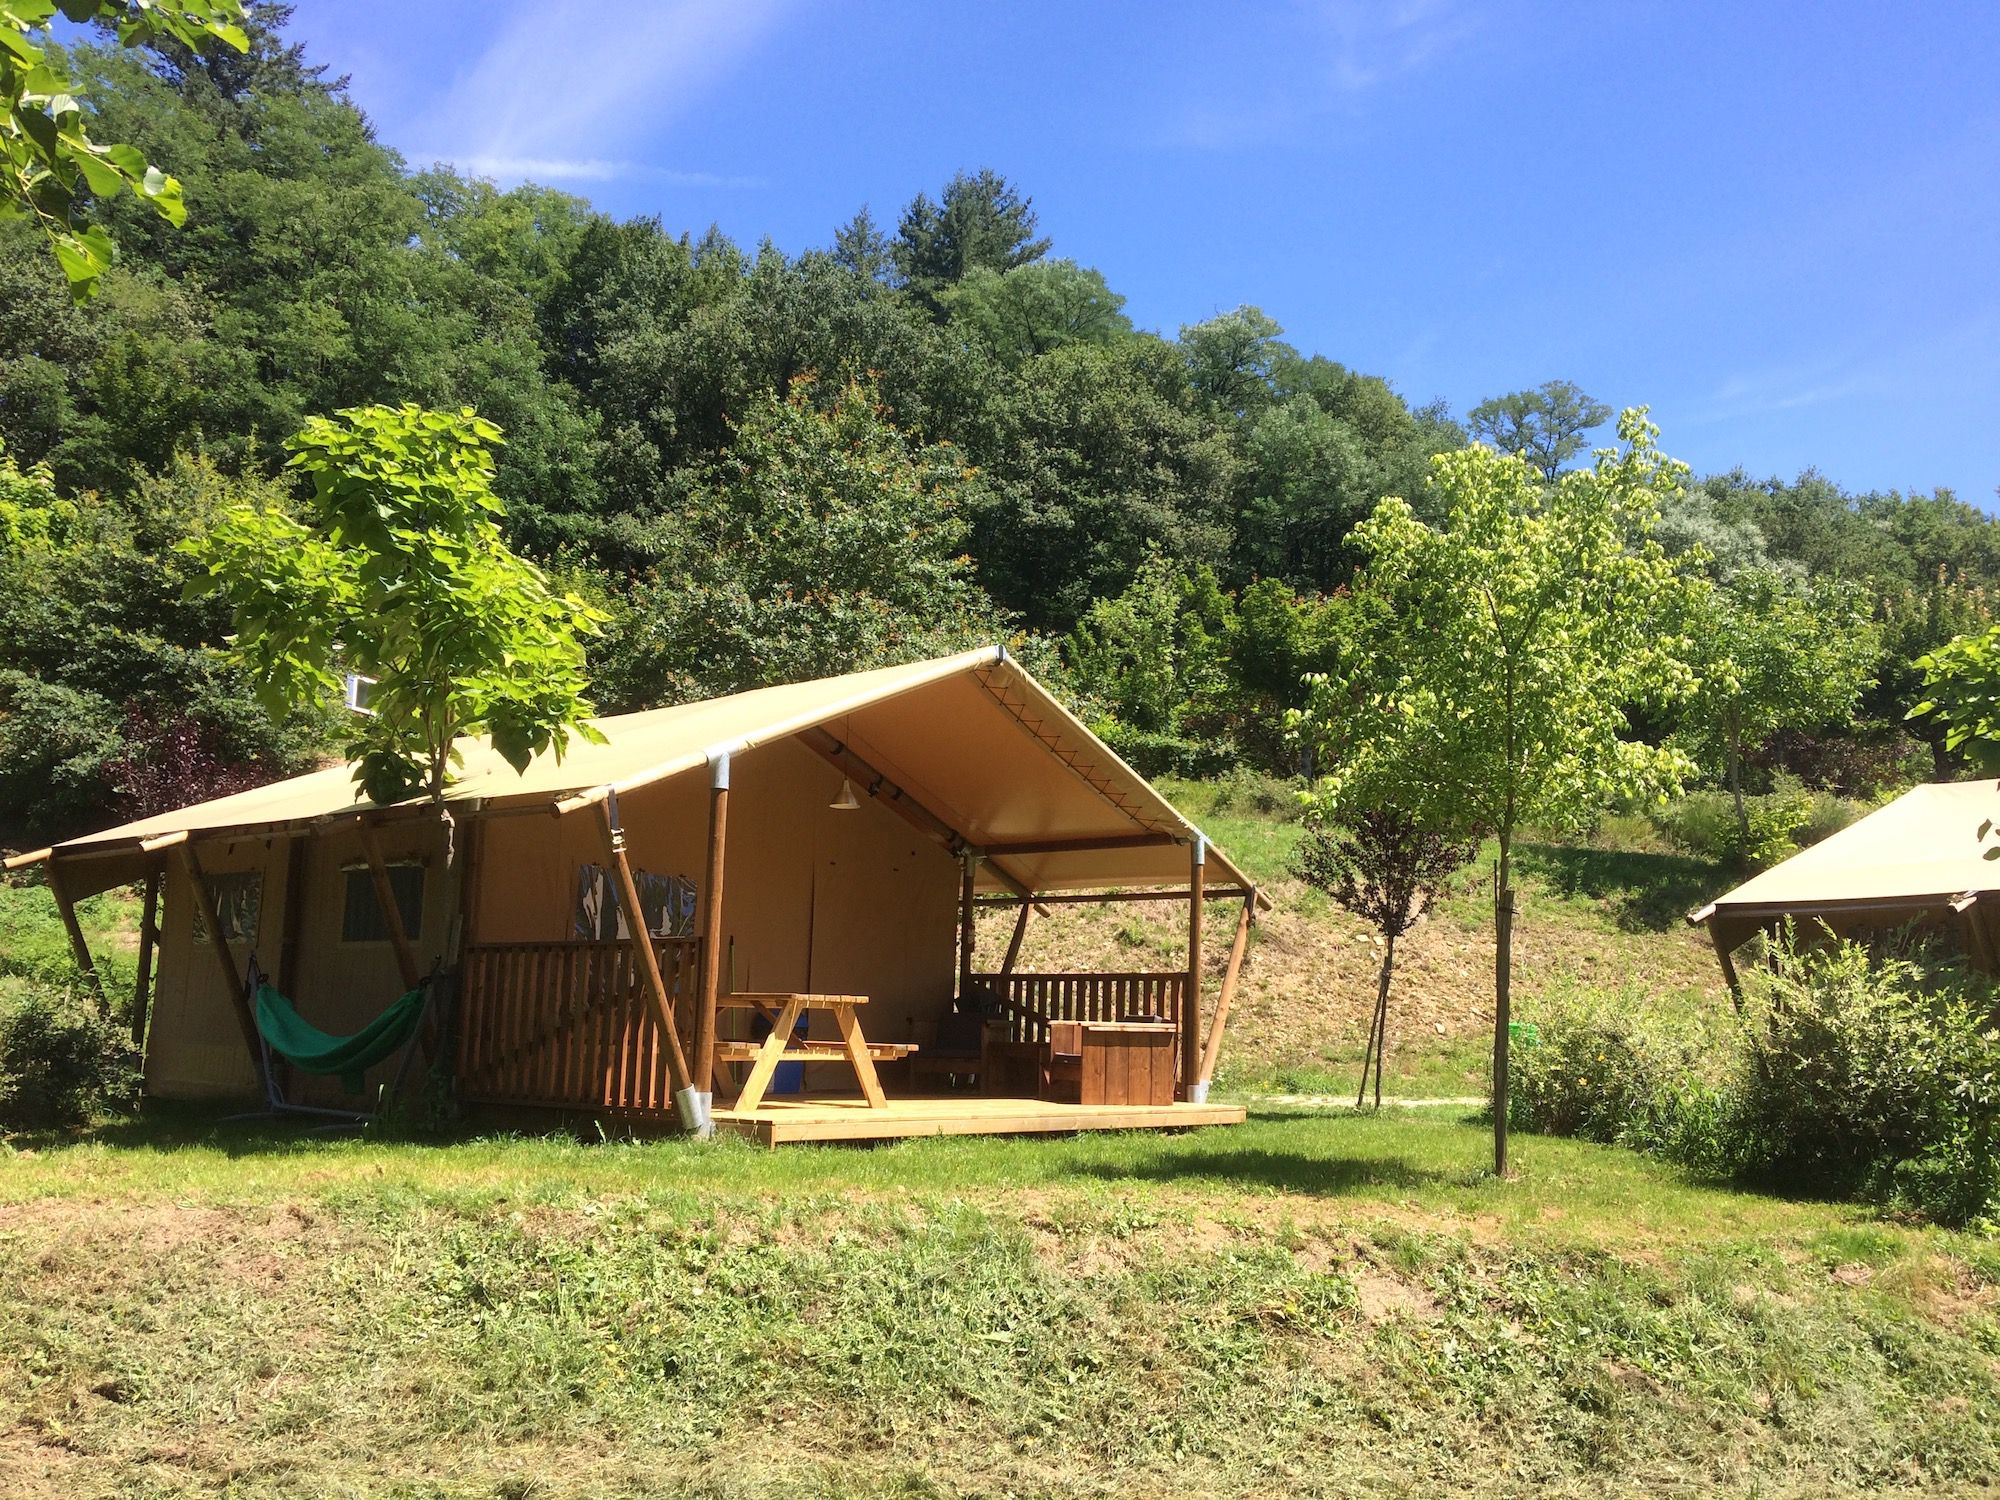 Safari tents in France